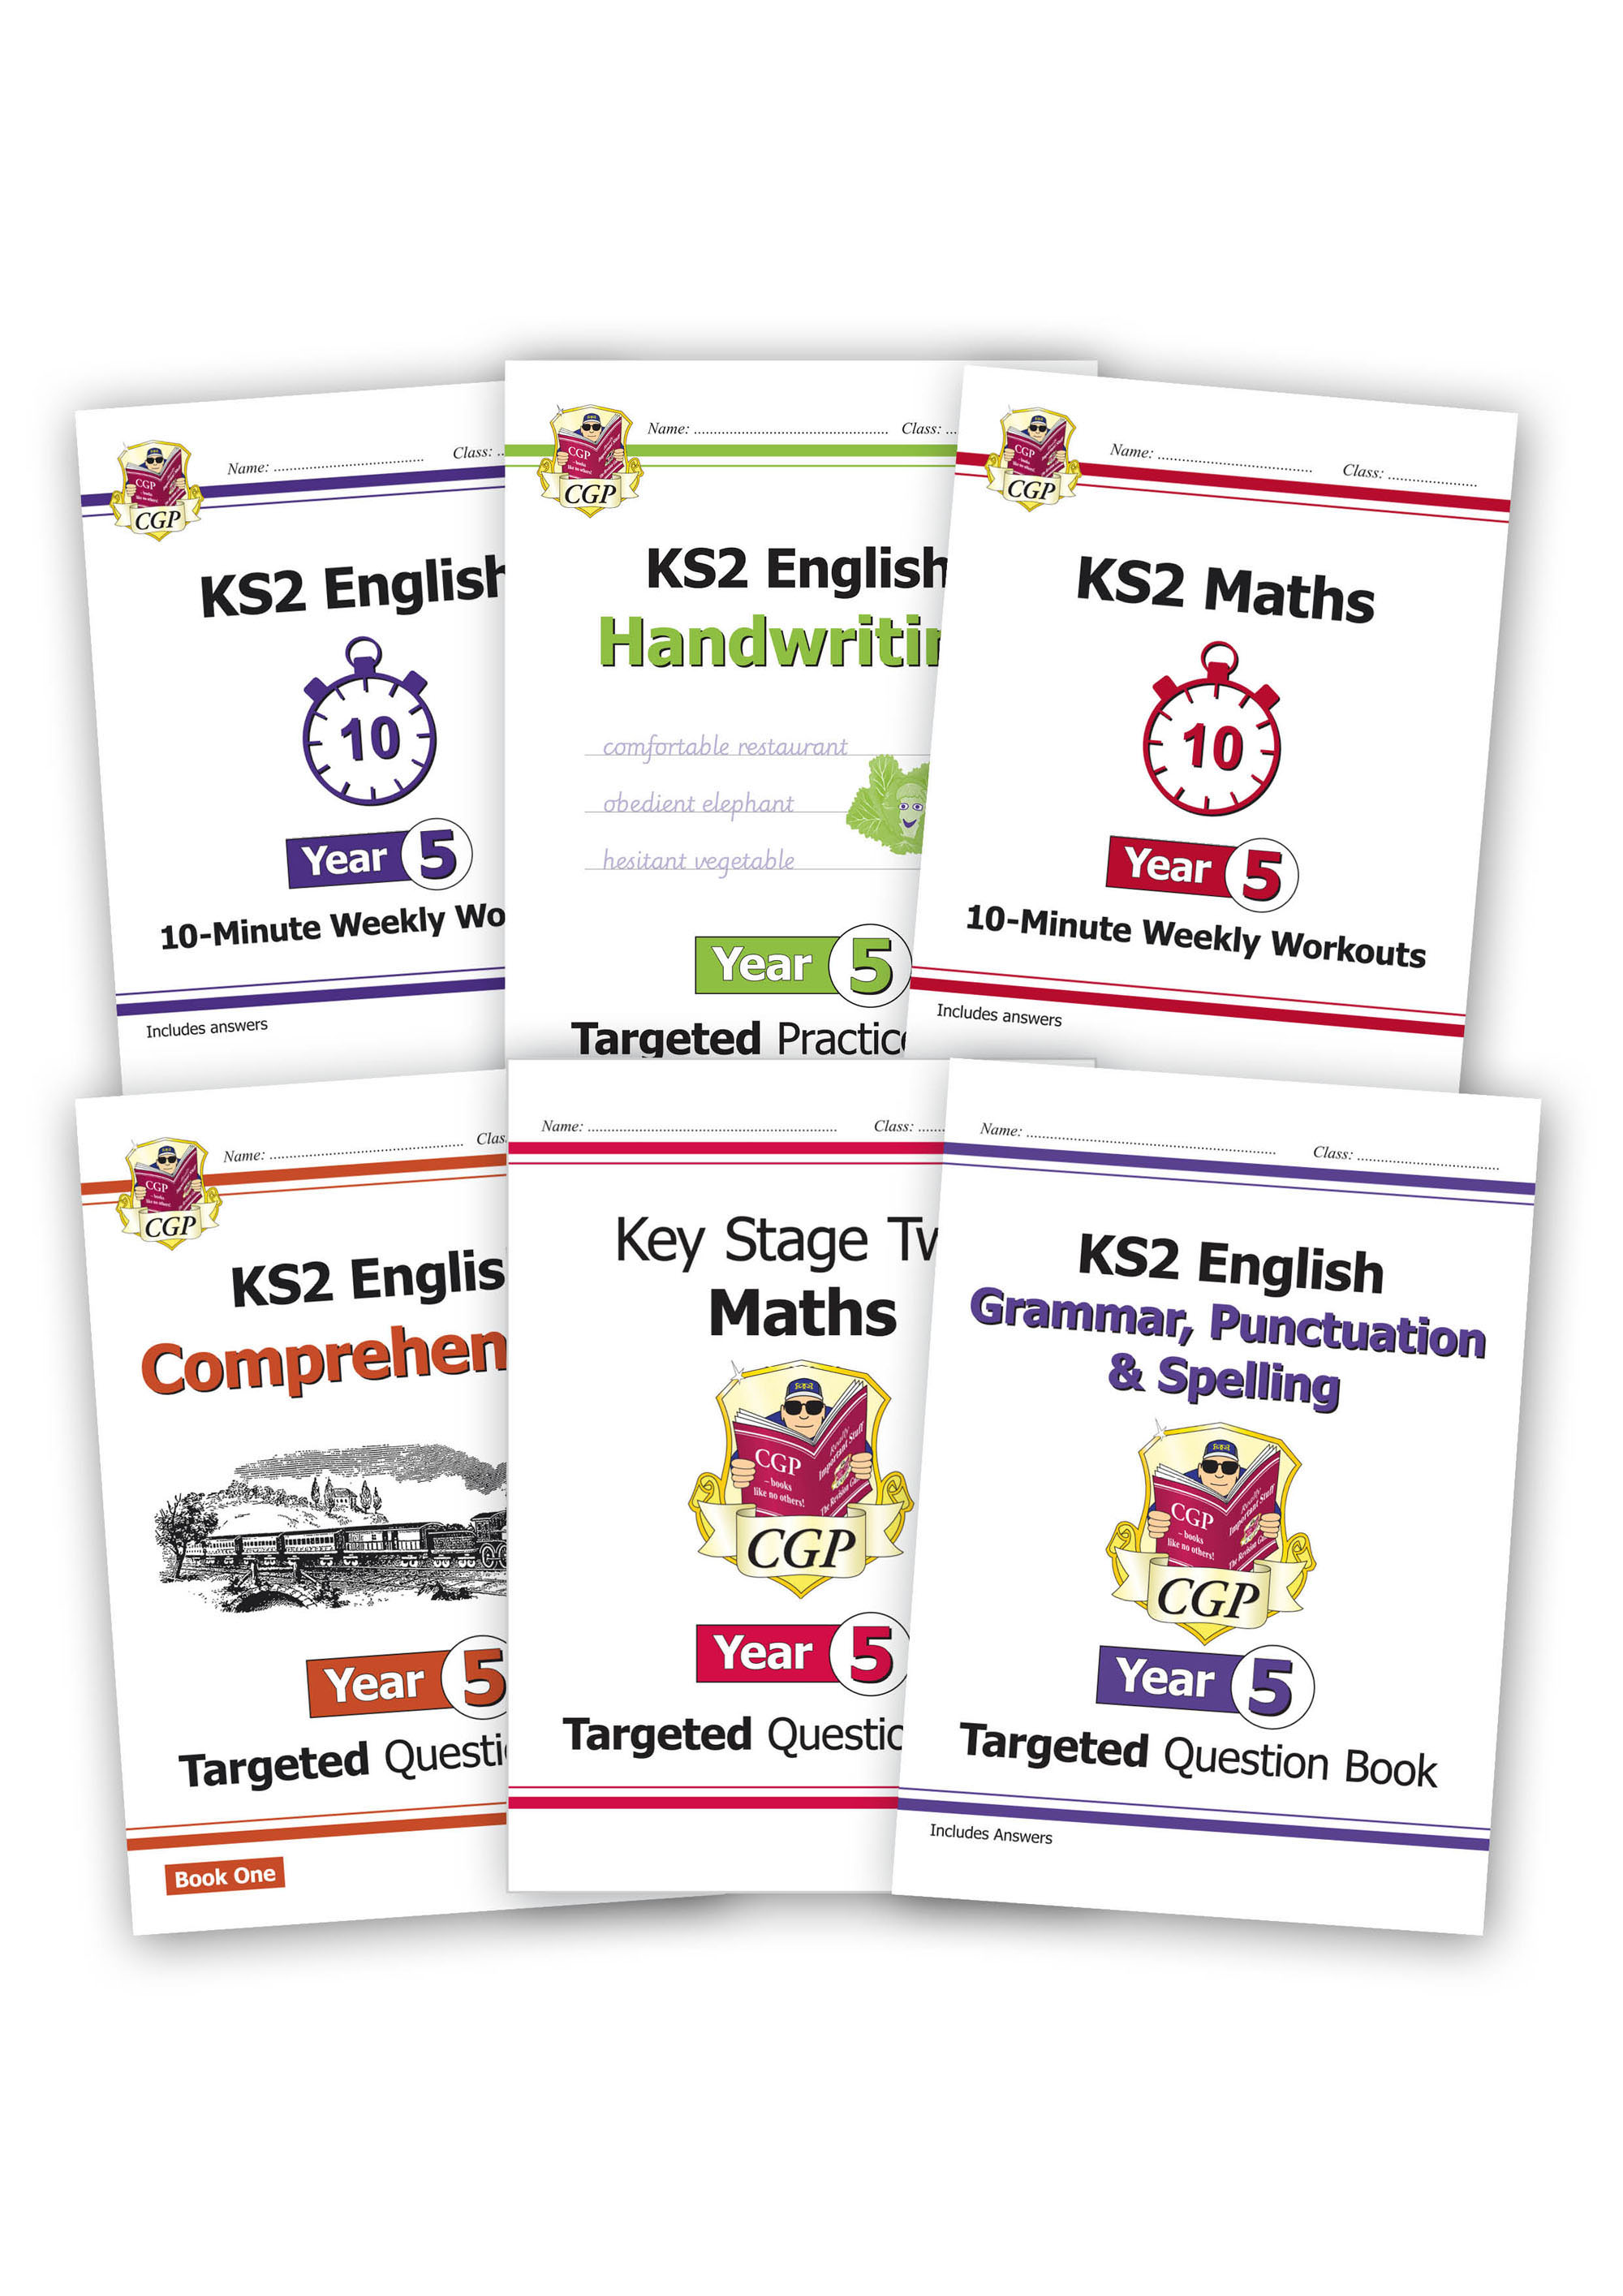 EM5HSB26 - Year 5 Home Learning Bundle: Maths & English